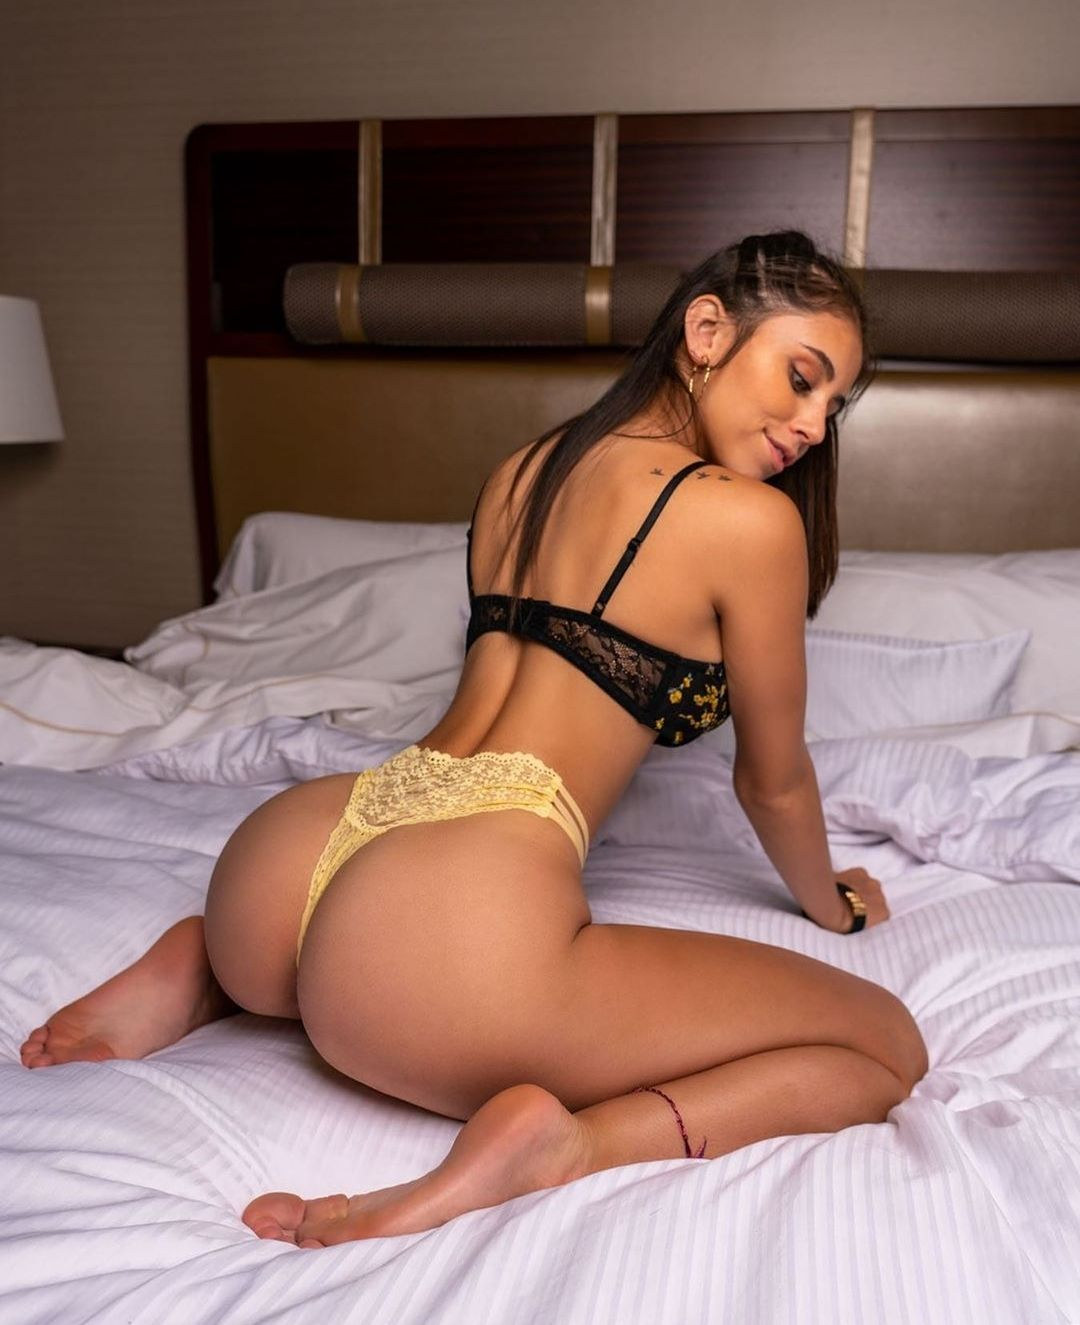 Violet Summers Nude Leaked Photos 0174